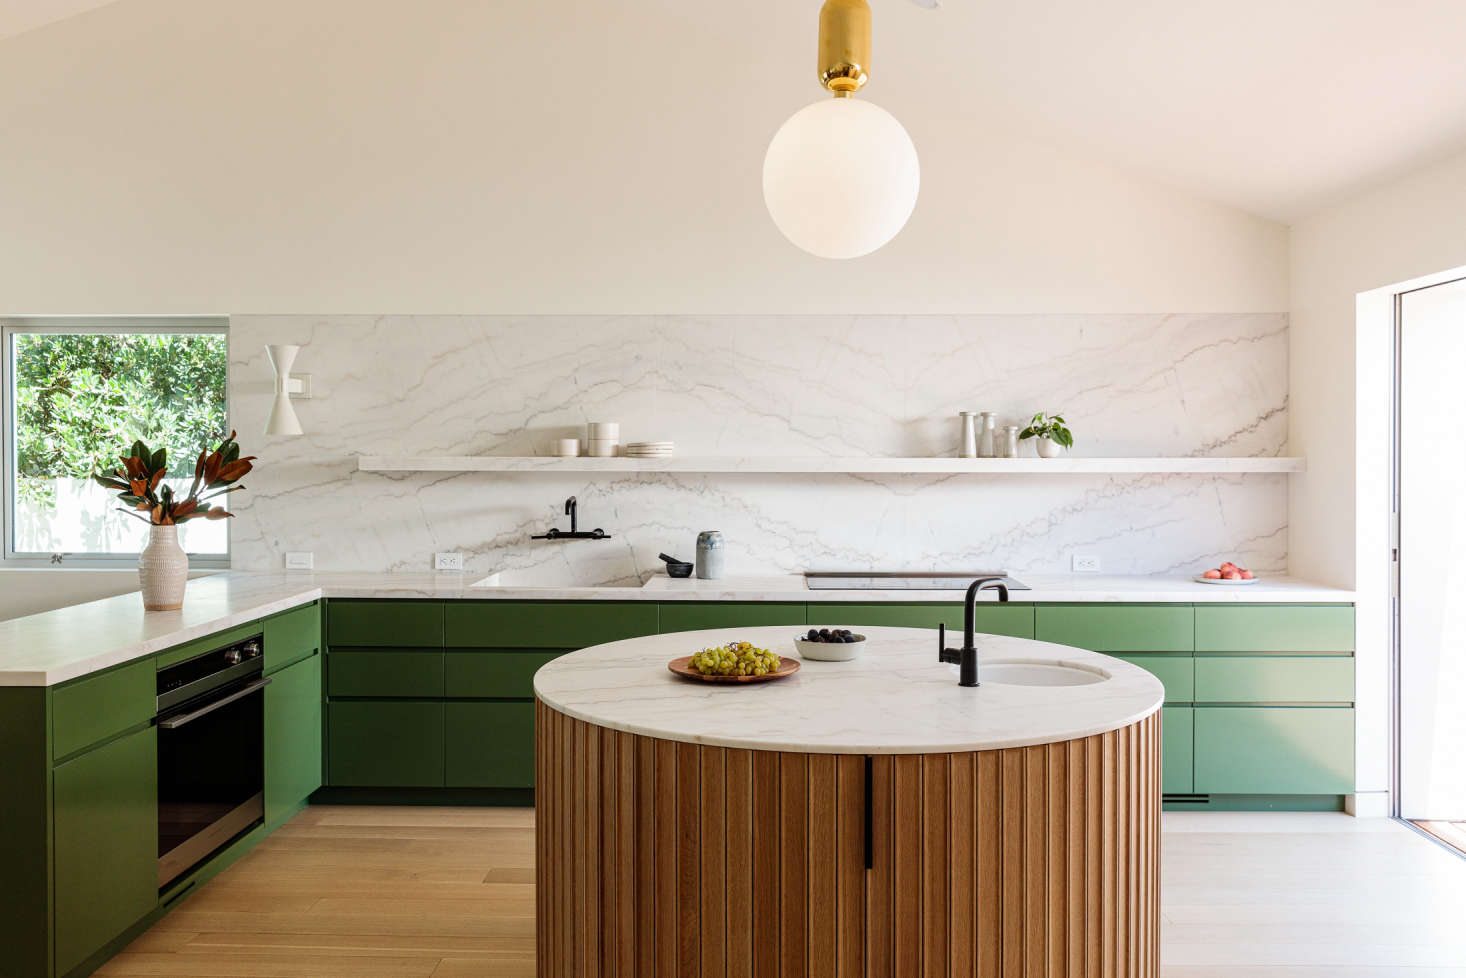 """A sunny Los Angeles kitchen by And And And Studio features a suite of Contemporary-style appliances: a 36"""" Five-Zone Induction Cooktop, Integrated Double DishDrawer Dishwasher; 30"""" Wall Oven, and 36"""" Integrated Refrigerator Freezer. Photograph by The Ingalls."""